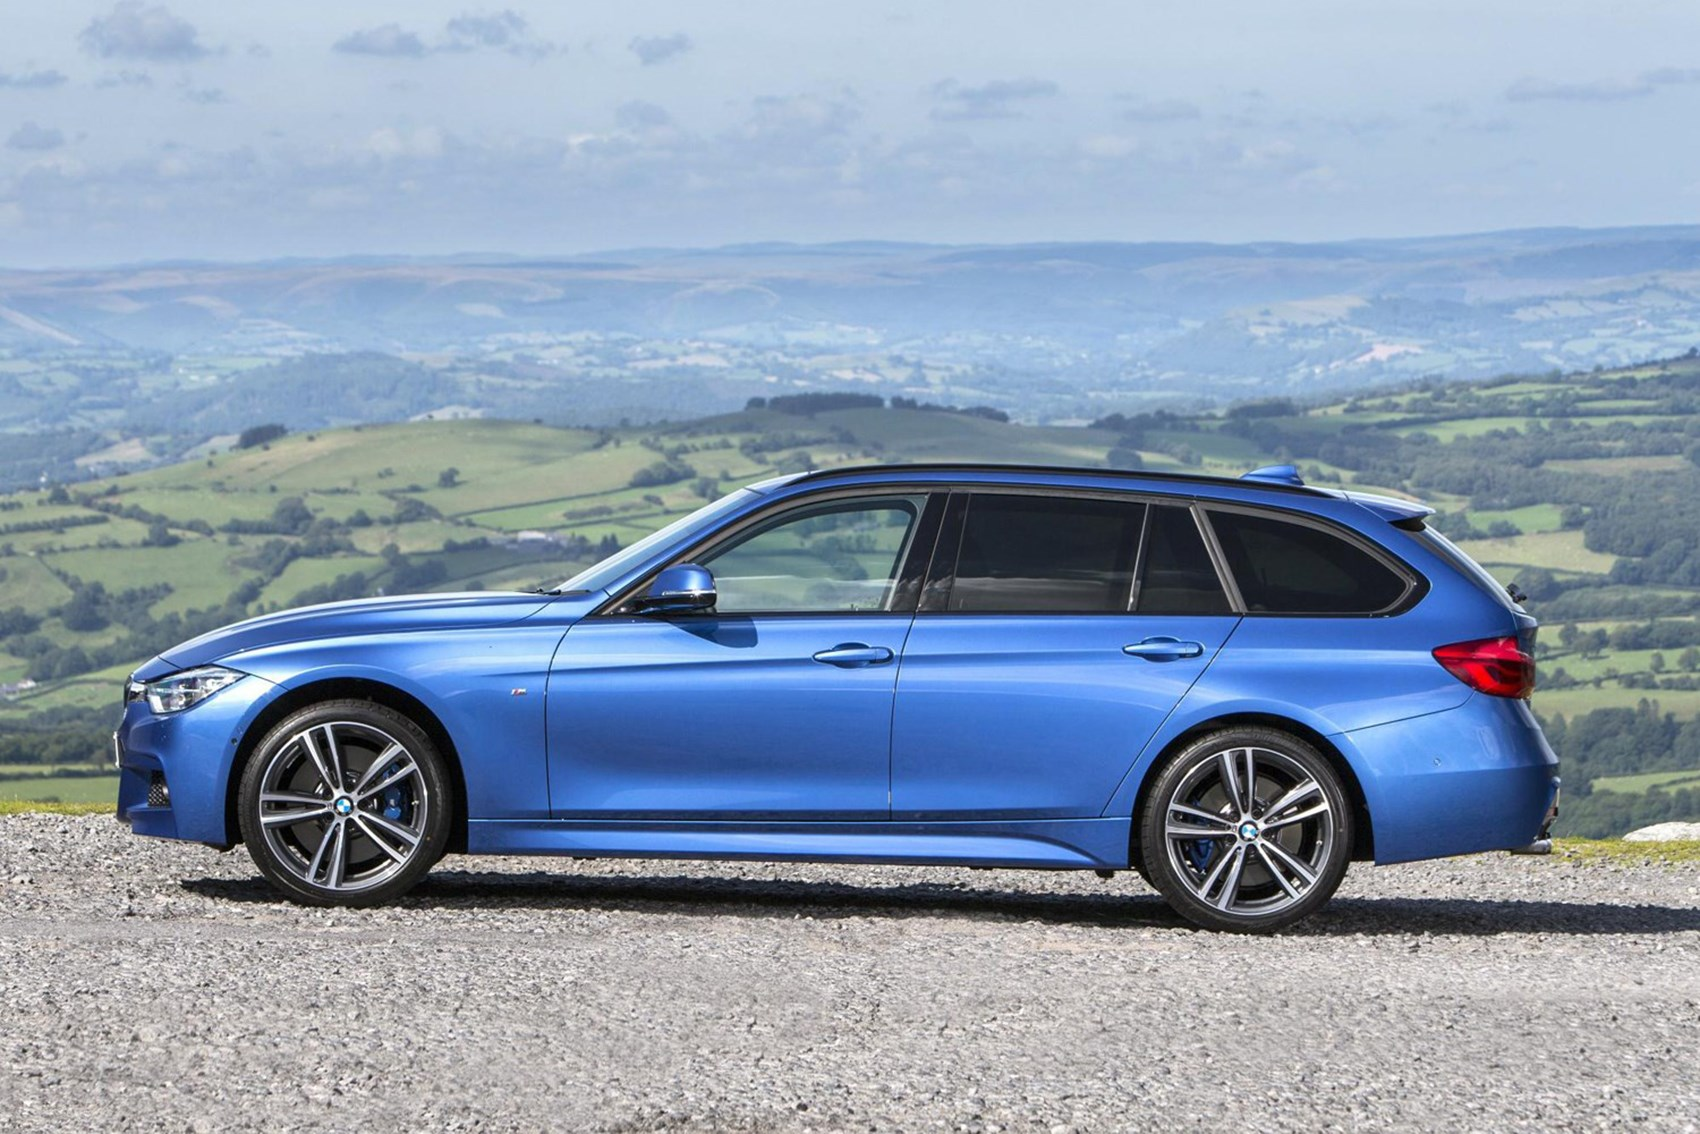 BMW 3-Series Touring - fast economical cars